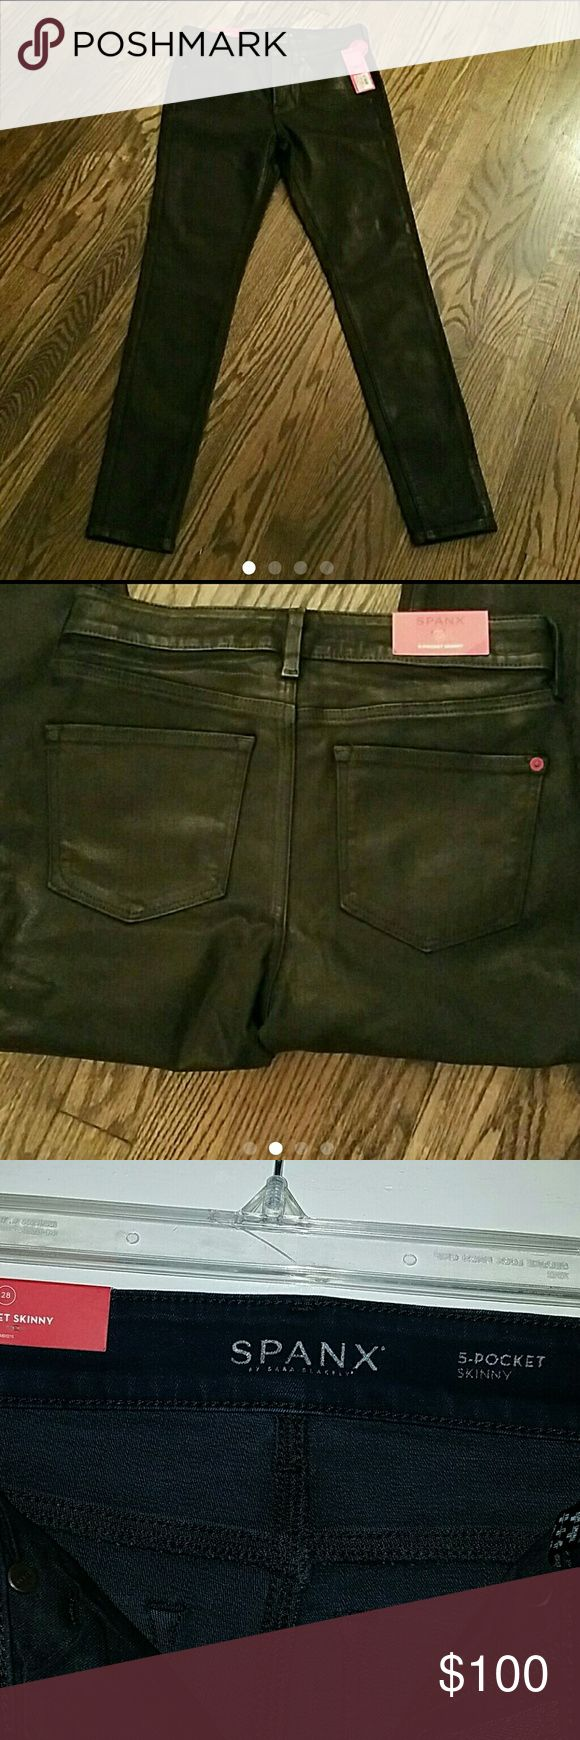 SPANX SIZE 28 BLACK WAXED JEANS/LEATHER LOOK Black, Leather Look Jeans. This is a brand new and original price is $178 but you're getting them for a steal of a deal SPANX Jeans Skinny